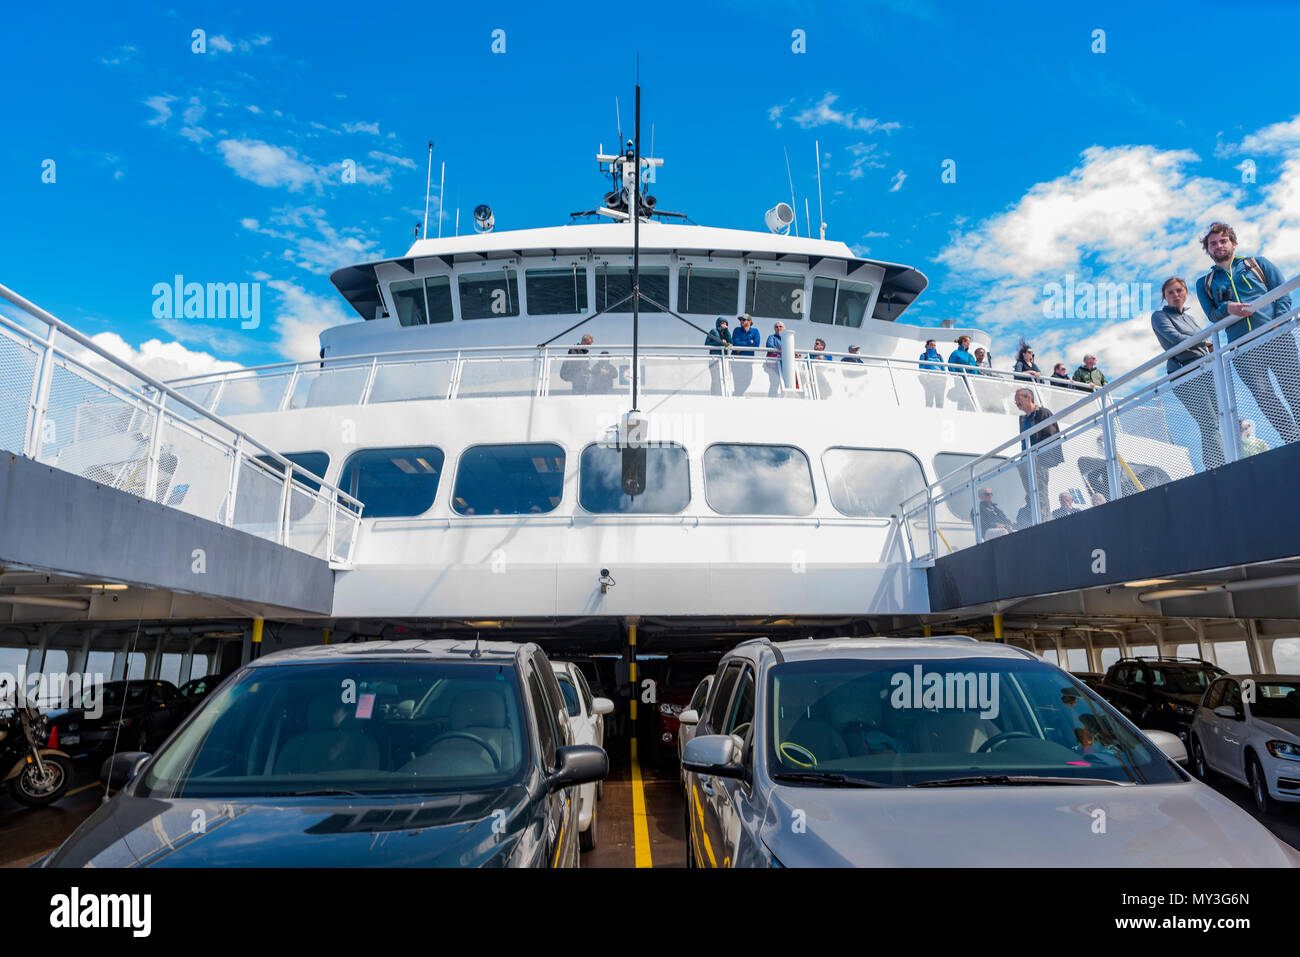 Cars and passengers on decks of BC Ferry, British Columbia, Canada. - Stock Image